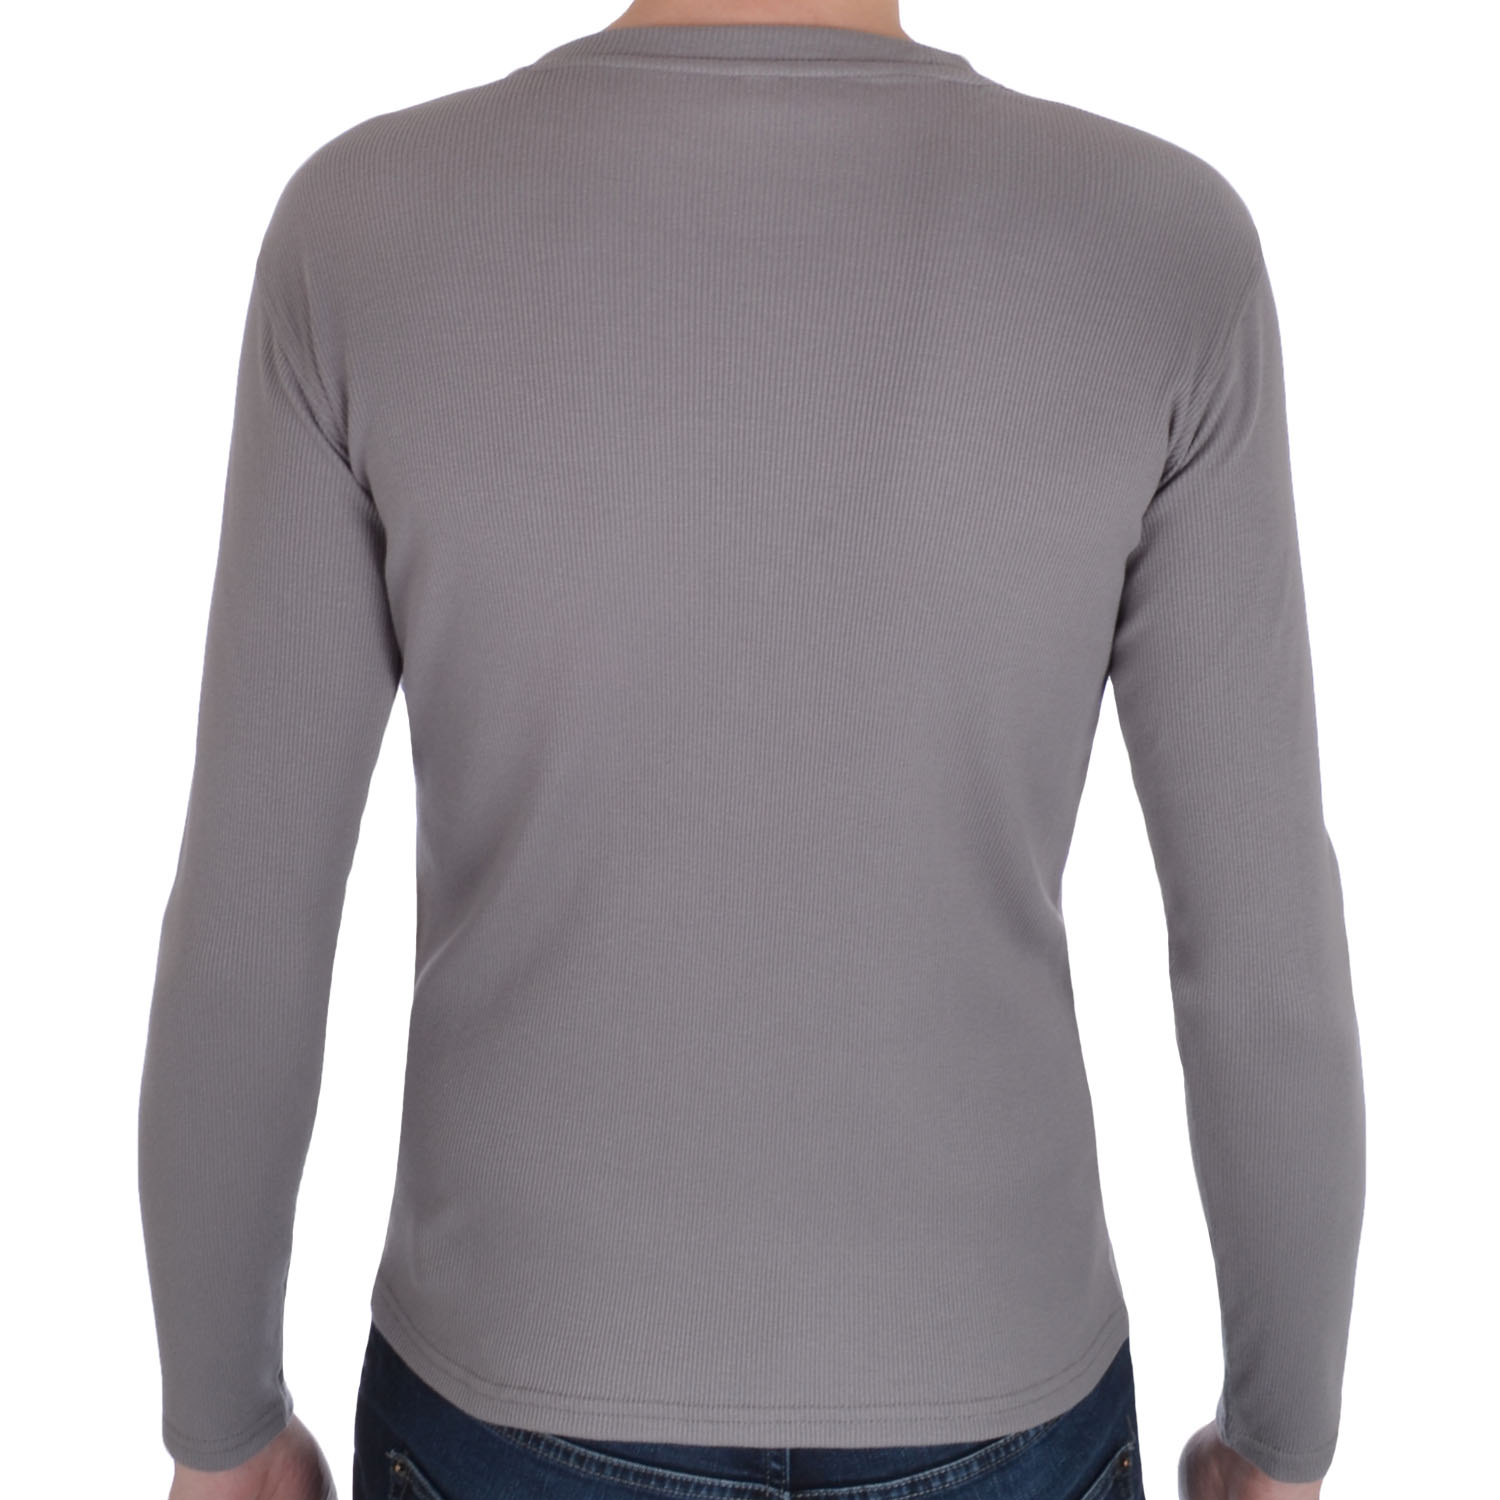 Adjust your sleeves to suit your needs with the long-sleeve, crew-neck, stretch T-shirt from Allure by White Cross. This shirt fits snugly under your scrubs and gives you comfort, customization, and style!/5(6).